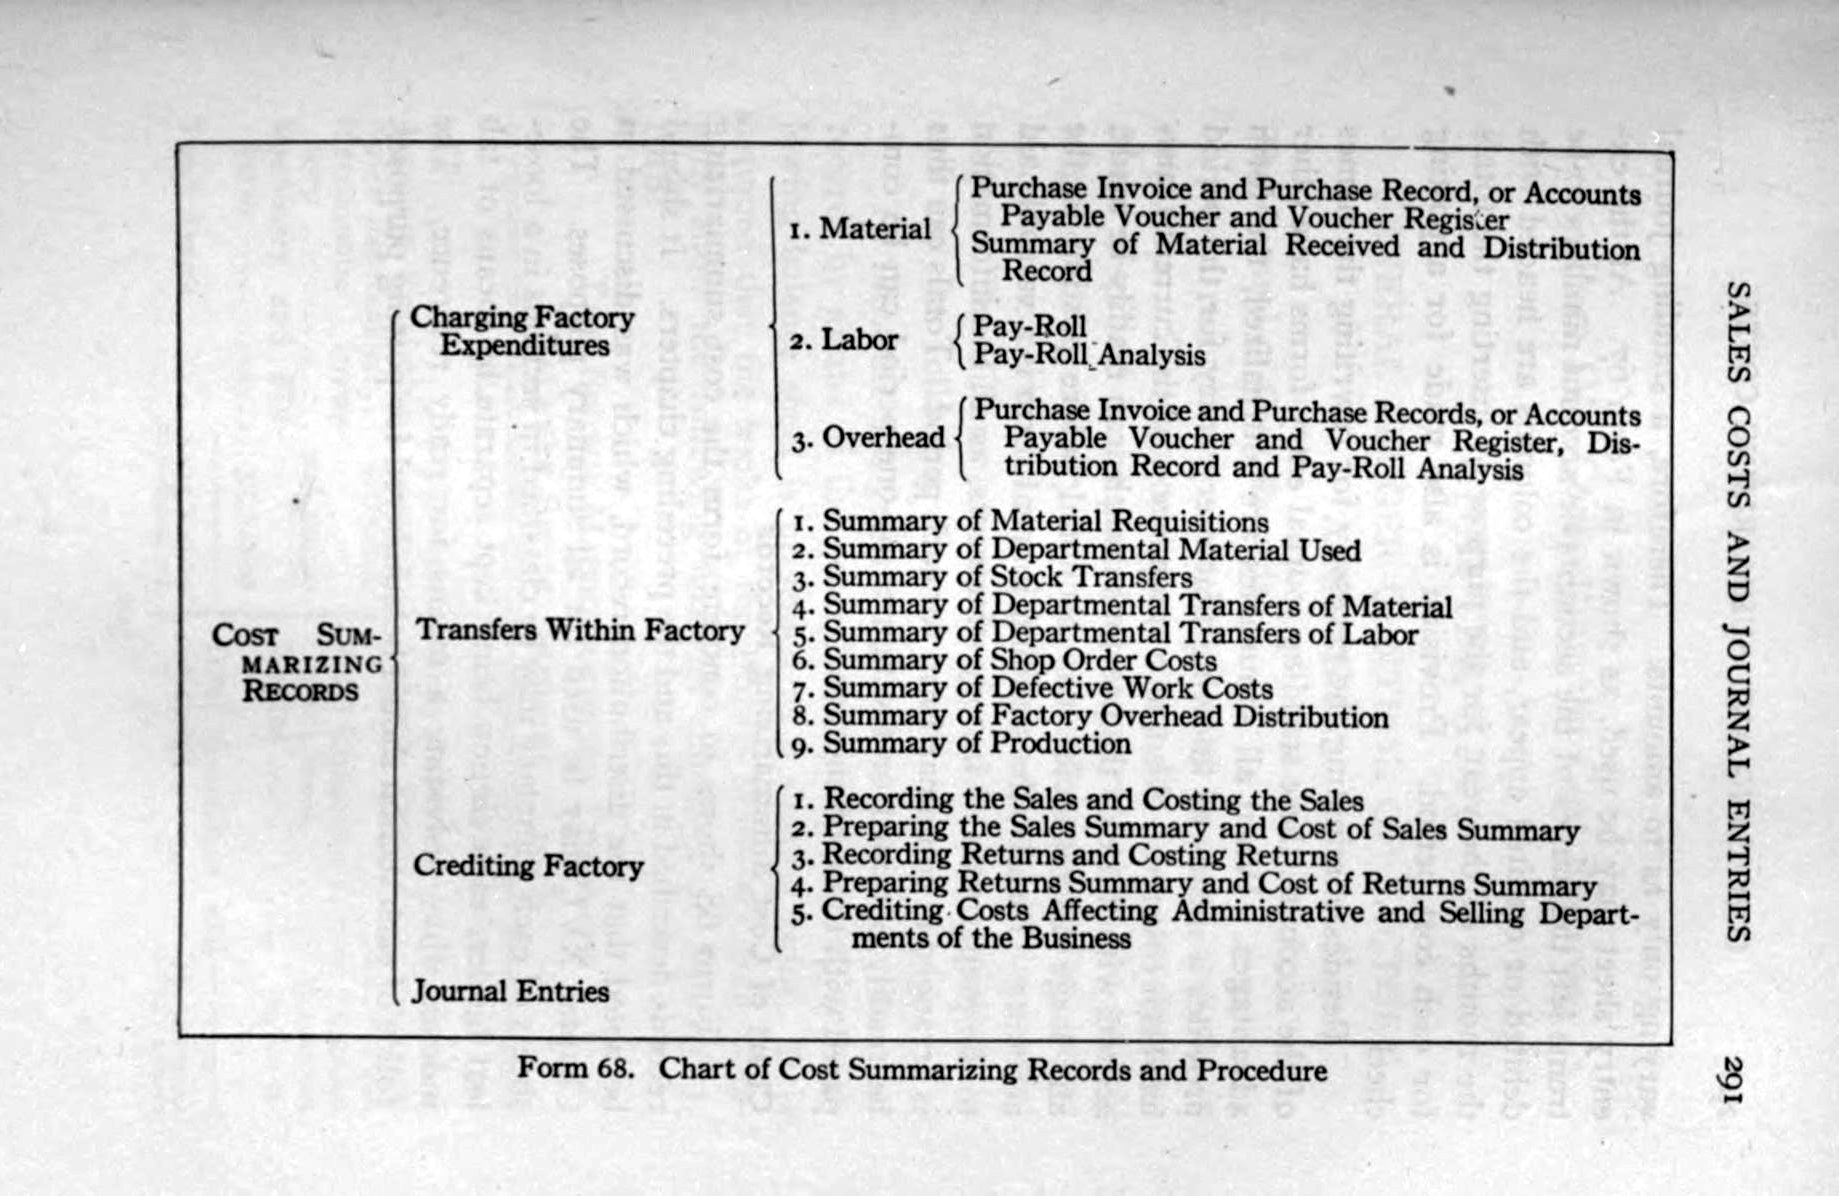 Apple Stock Charts: Chart of Cost Summarizing Records and Procedures 1919.jpg ,Chart